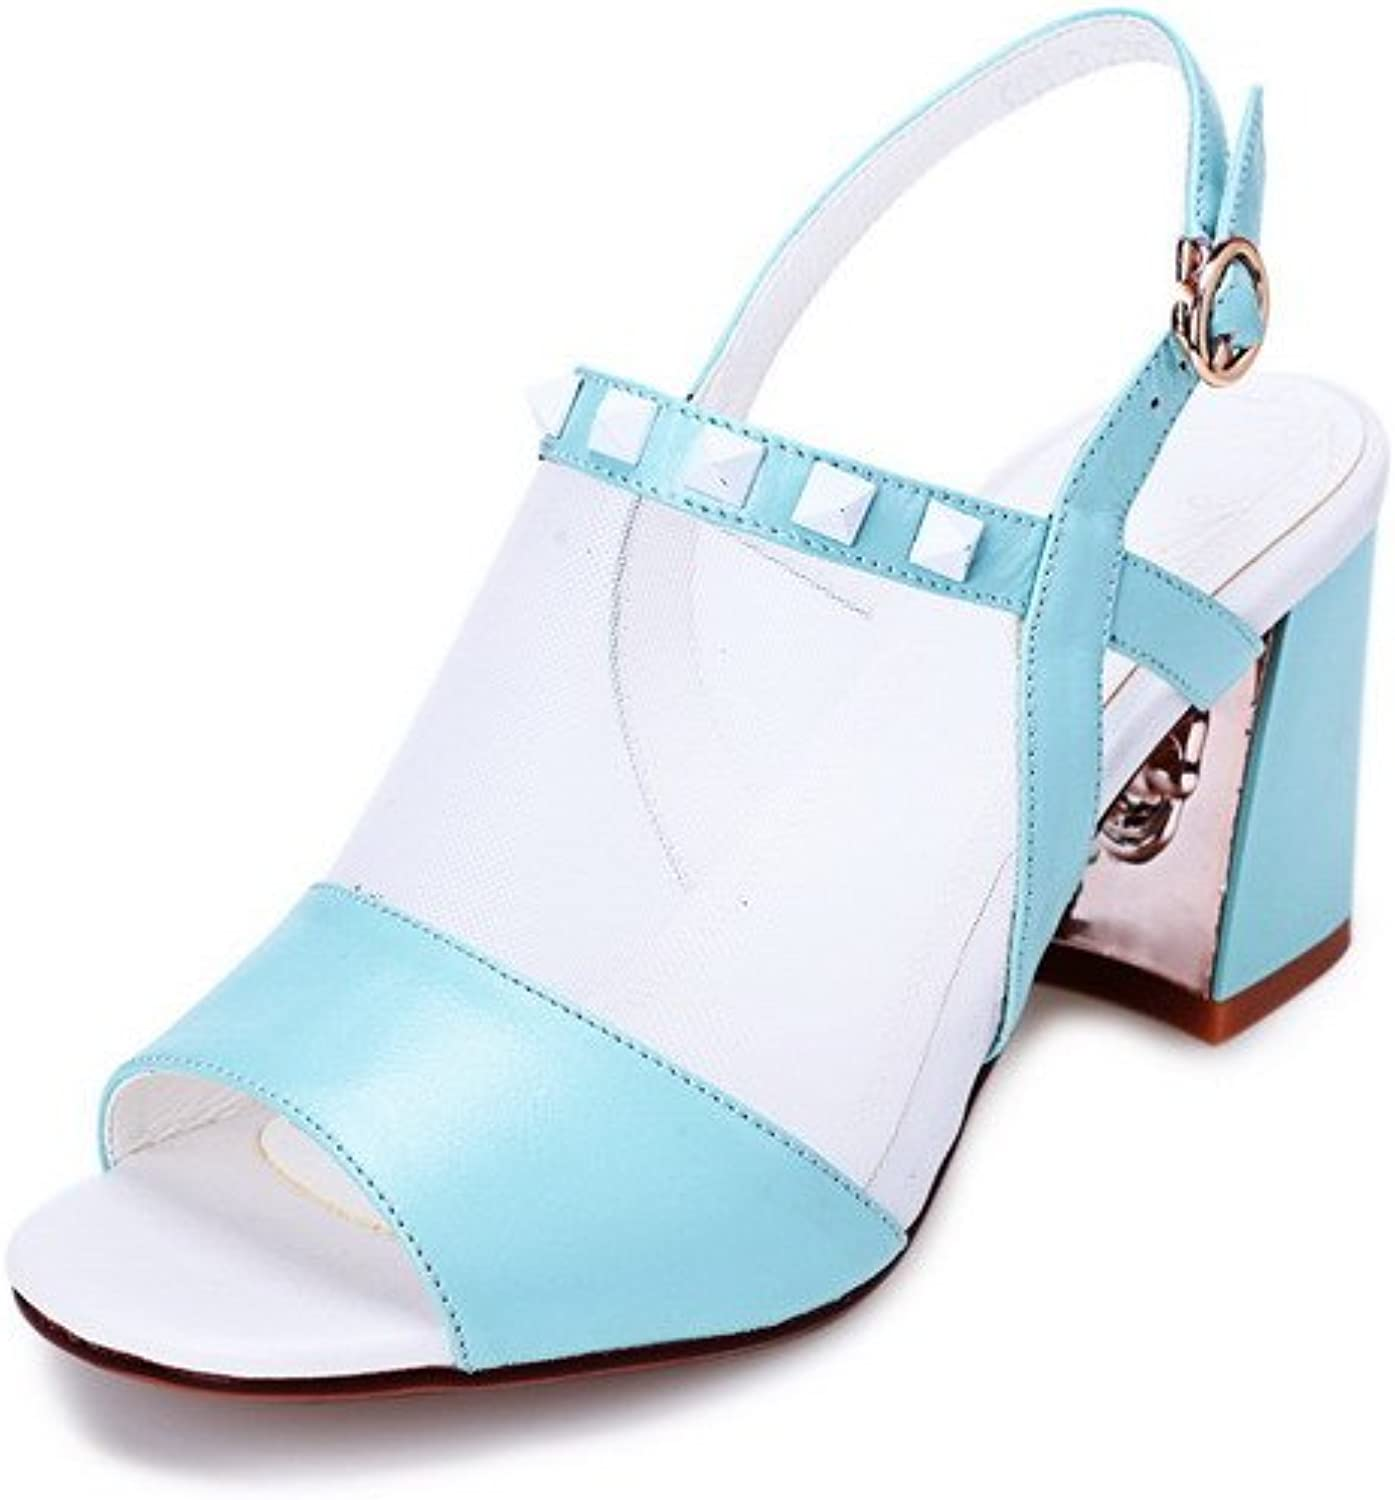 WeenFashion Women's Buckle Cow Leather Open Toe High Heels with Rivet Solid Sandals